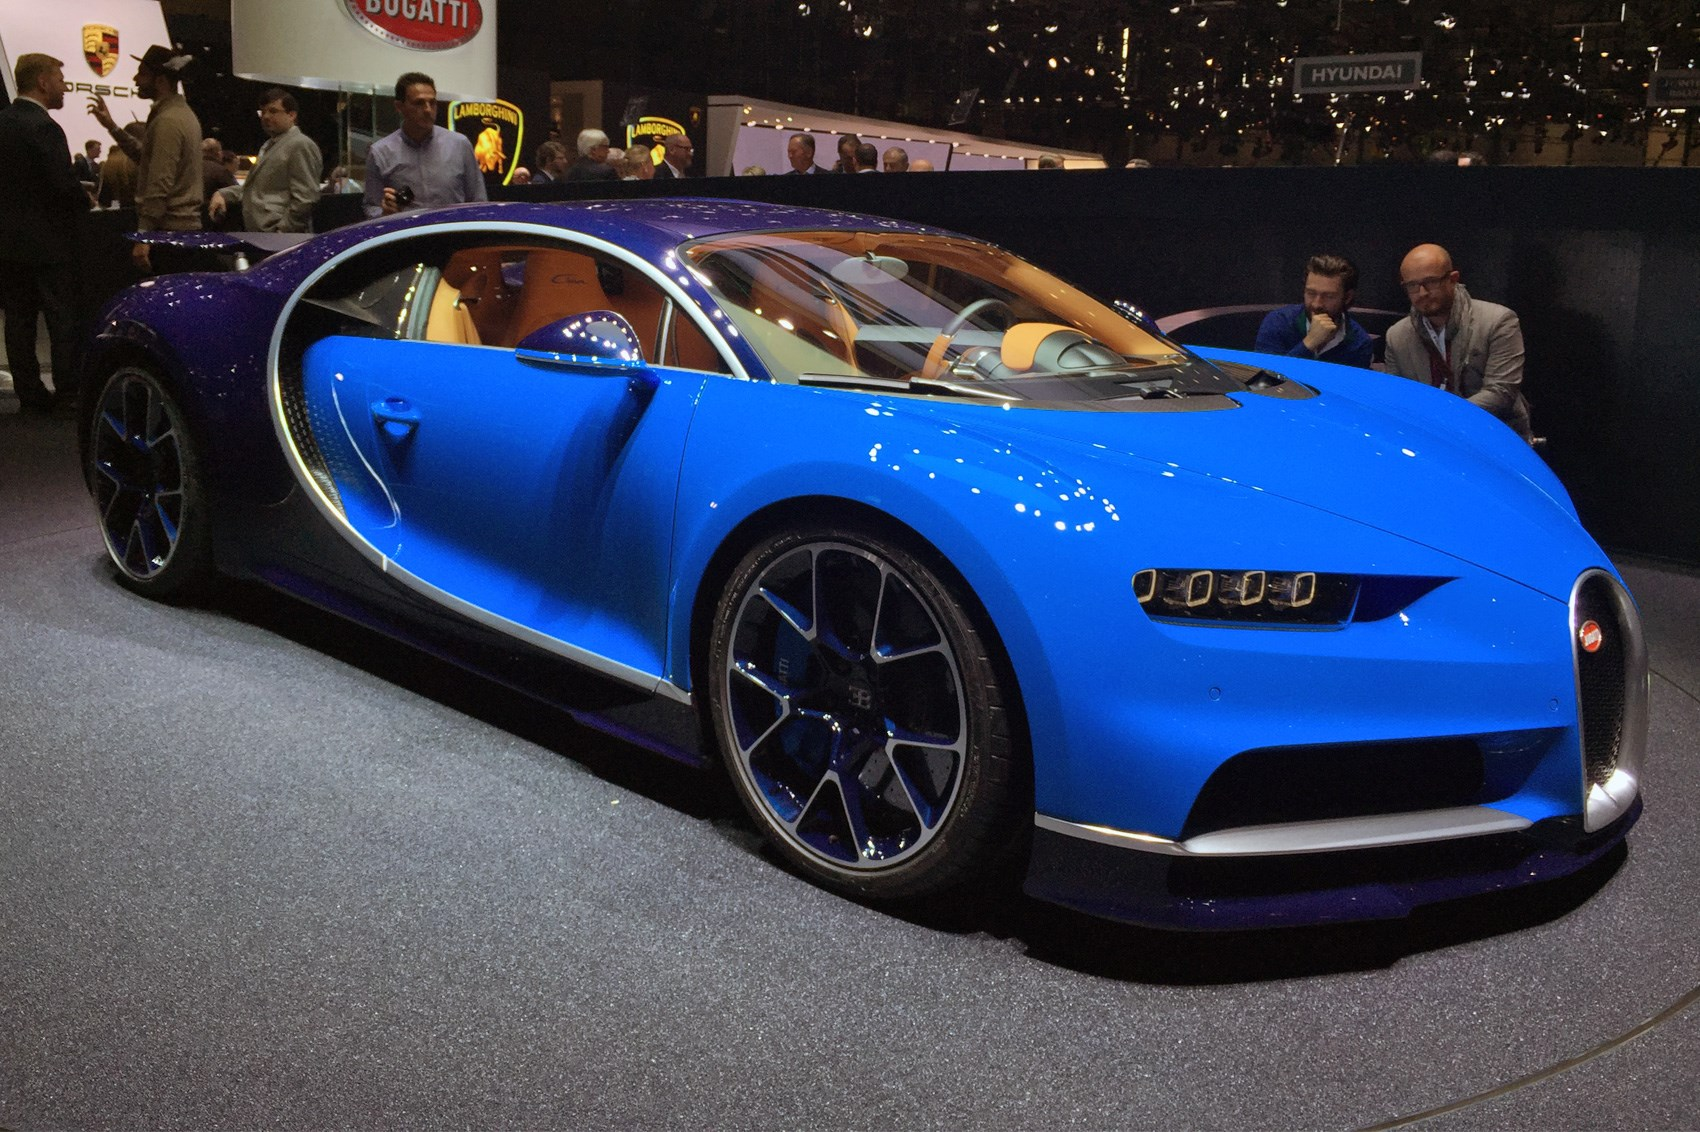 Ultrablogus  Prepossessing Bugatti Is Go New Chiron Name Confirmed Here At Geneva  By  With Outstanding Bugatti Chiron Revealed At Geneva  The World Has A New Fastest Production Car With Divine Interior Car Modifications Also Car Interior Decoration Ideas In Addition I Interior  View And P  Orion Interior As Well As Su Interior Additionally Falcon  Interior From Carmagazinecouk With Ultrablogus  Outstanding Bugatti Is Go New Chiron Name Confirmed Here At Geneva  By  With Divine Bugatti Chiron Revealed At Geneva  The World Has A New Fastest Production Car And Prepossessing Interior Car Modifications Also Car Interior Decoration Ideas In Addition I Interior  View From Carmagazinecouk